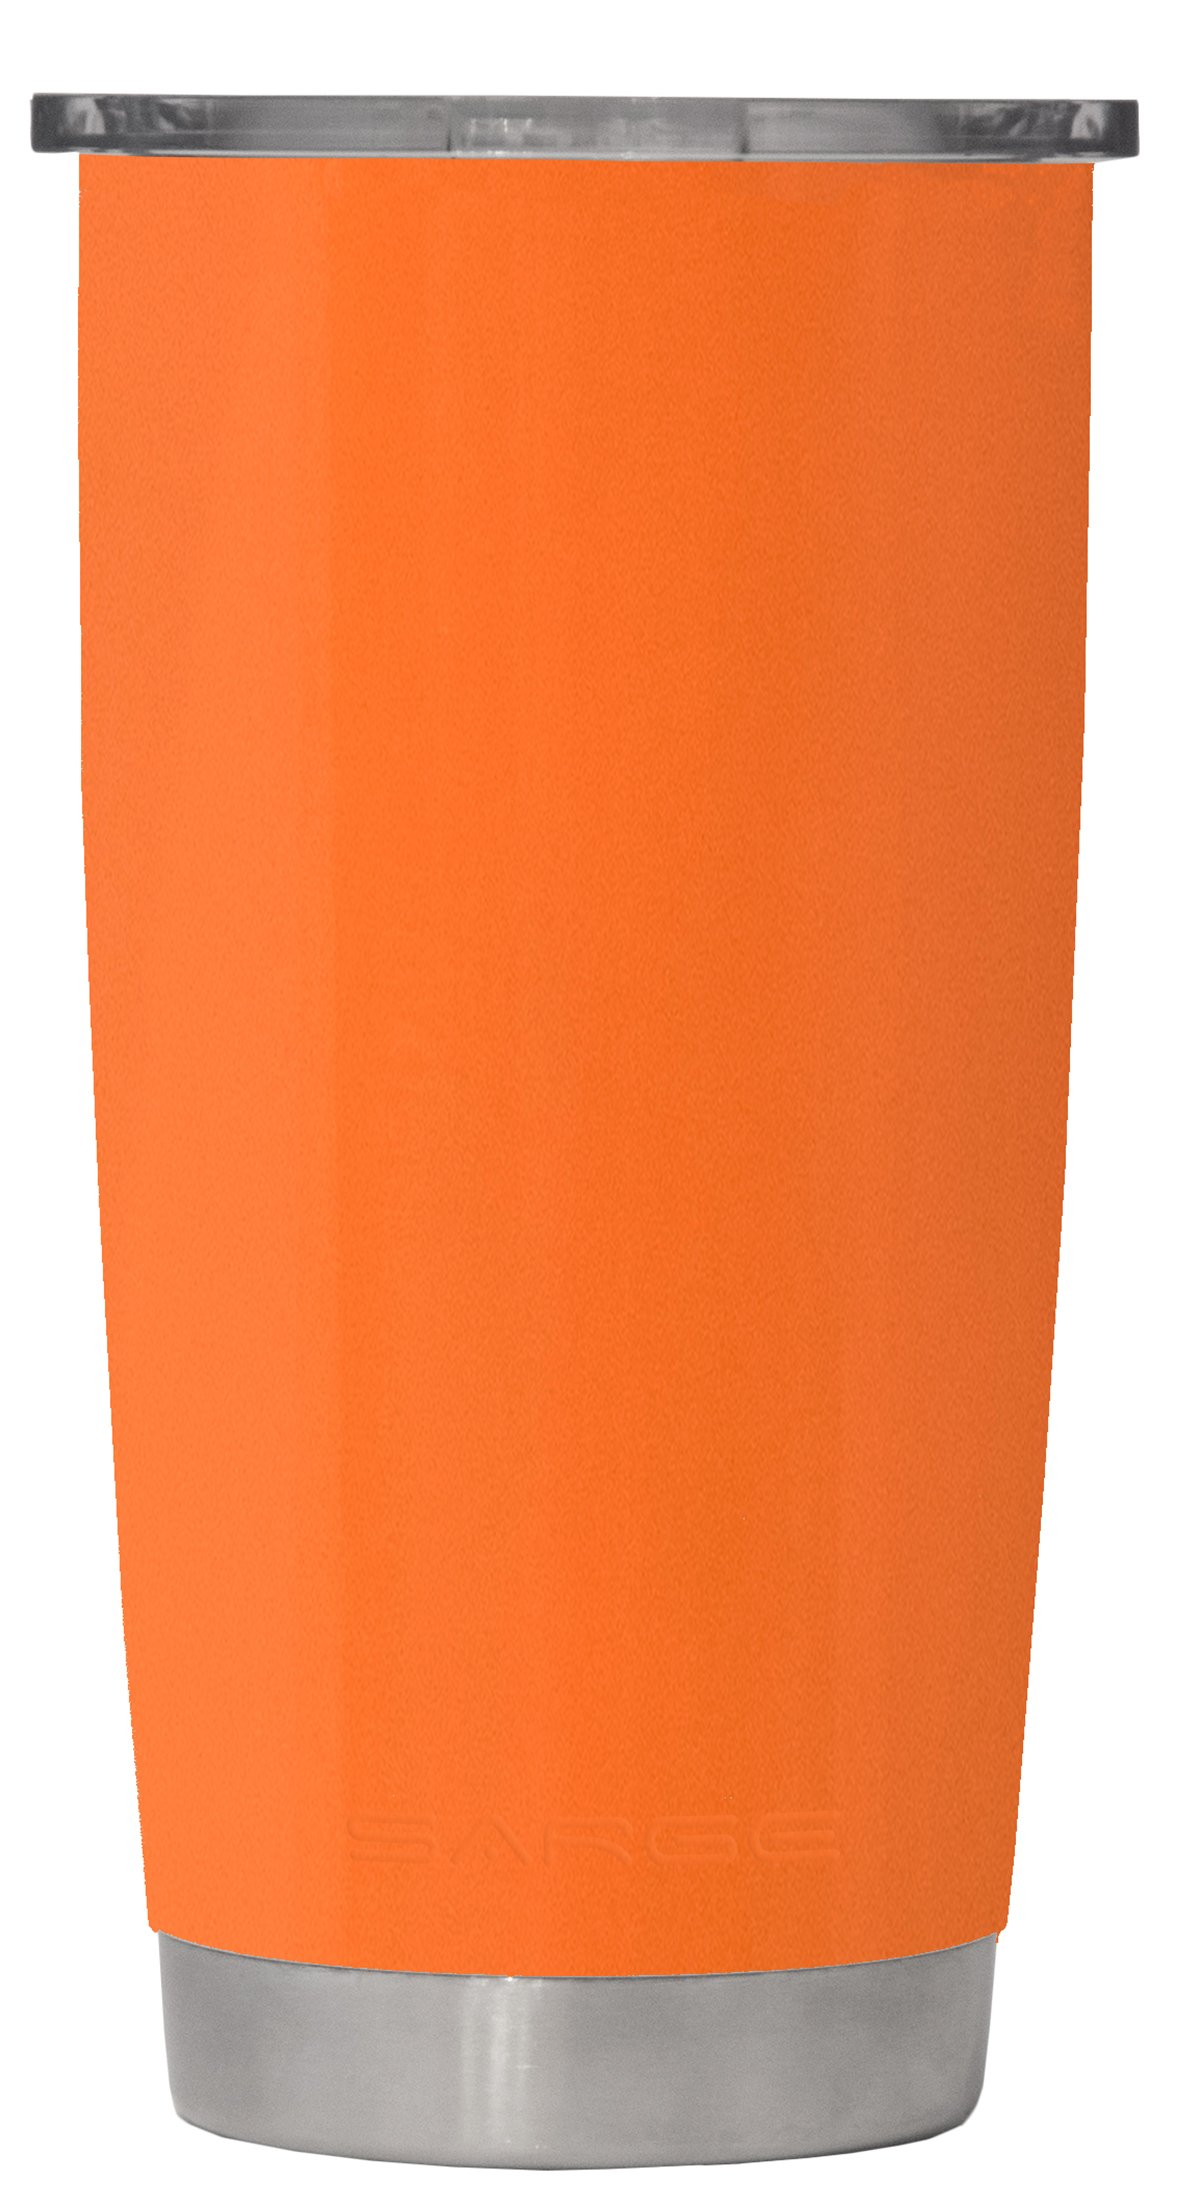 Sarge Knives DC-20OR 20 oz Stainless steel Tumbler with Shatterproof Lid and Orange Desert Cup